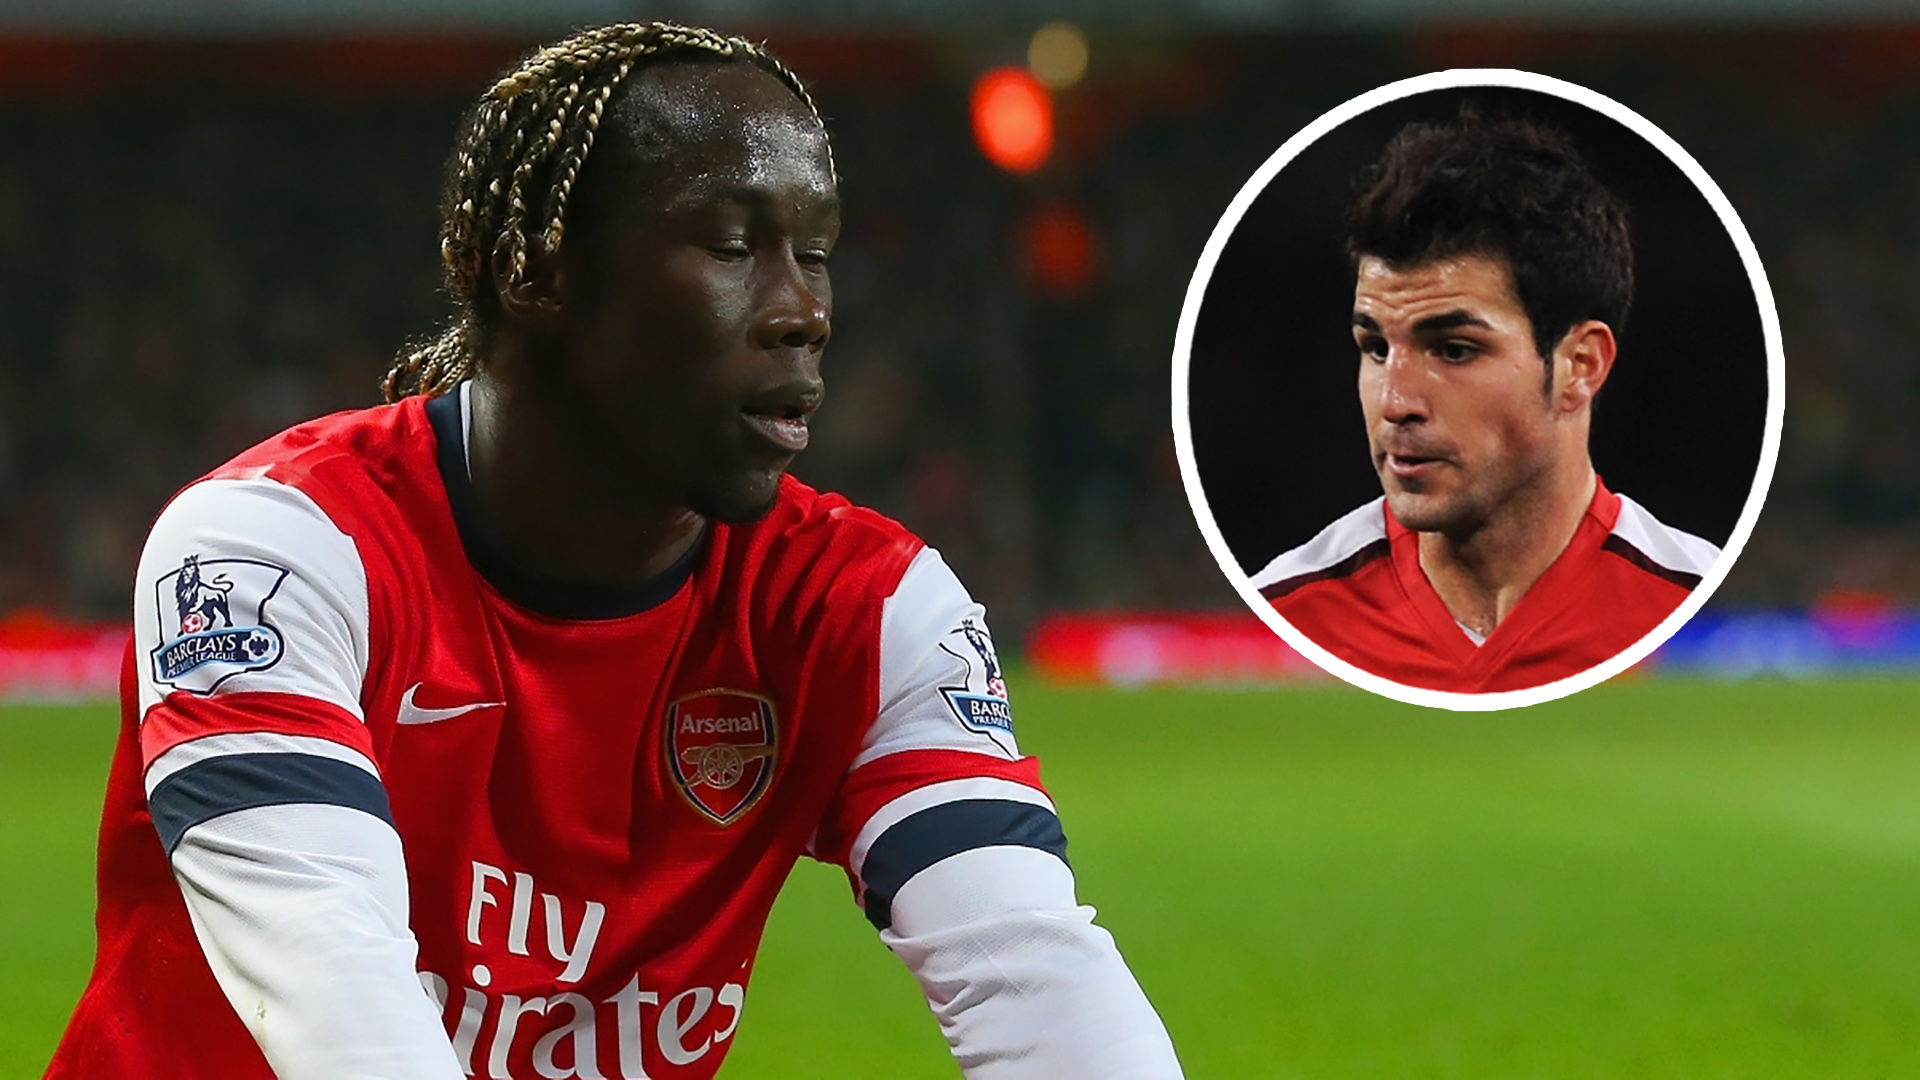 'From him I was surprised' - Sagna hits back at 'harsh' Fabregas